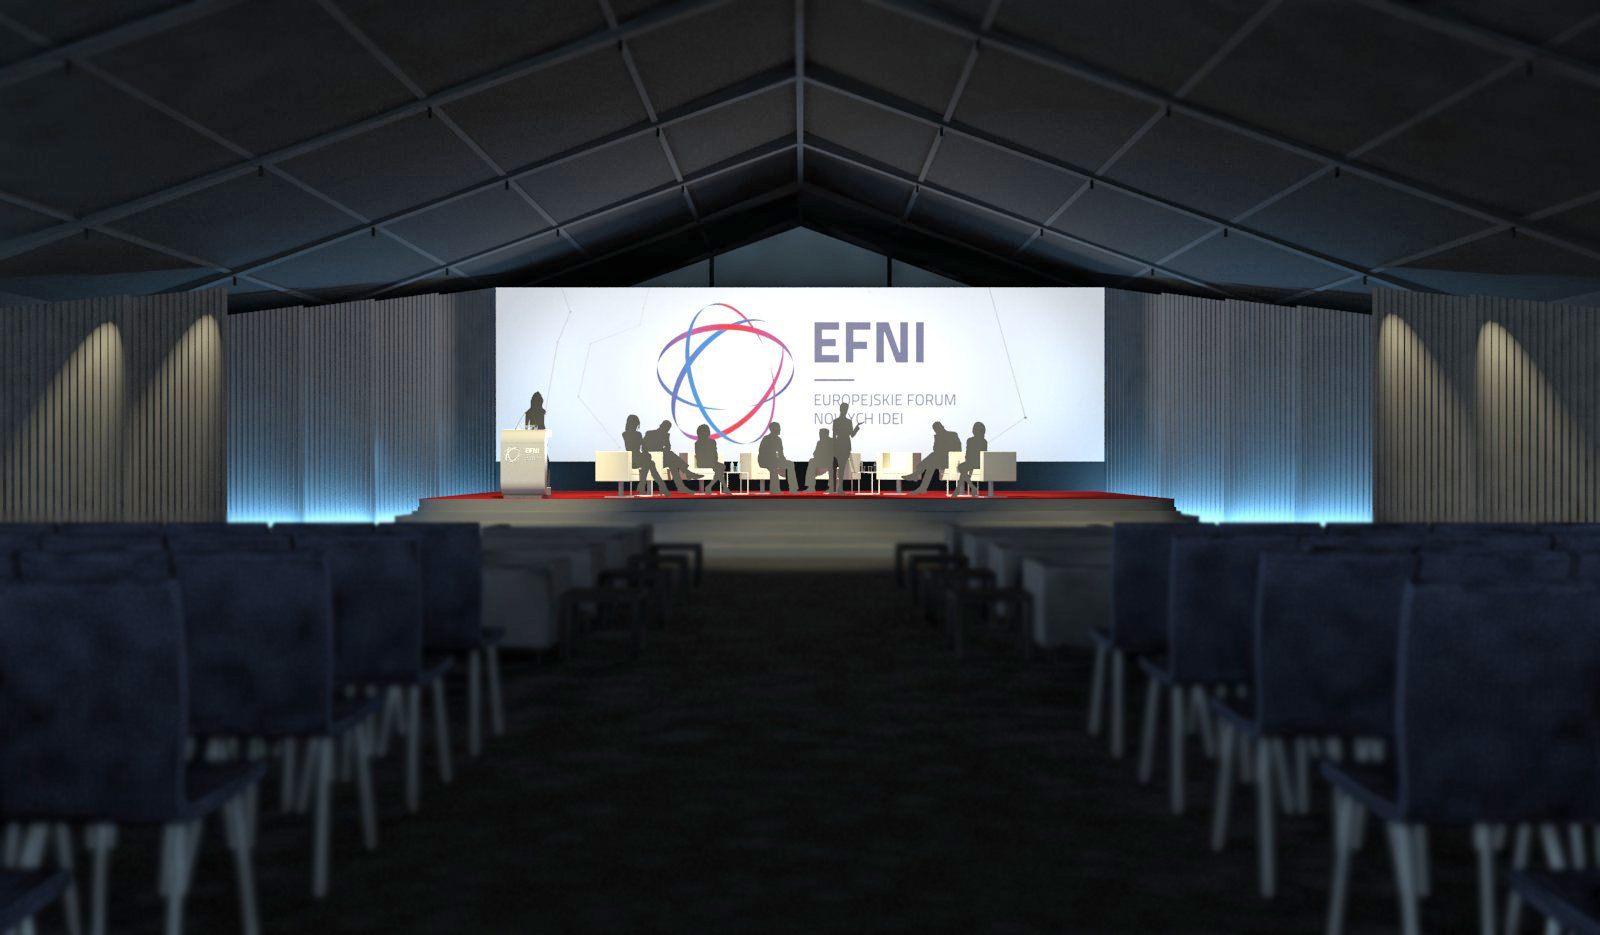 You are currently viewing Europejskie Forum Nowych Idei – Sopot 2015